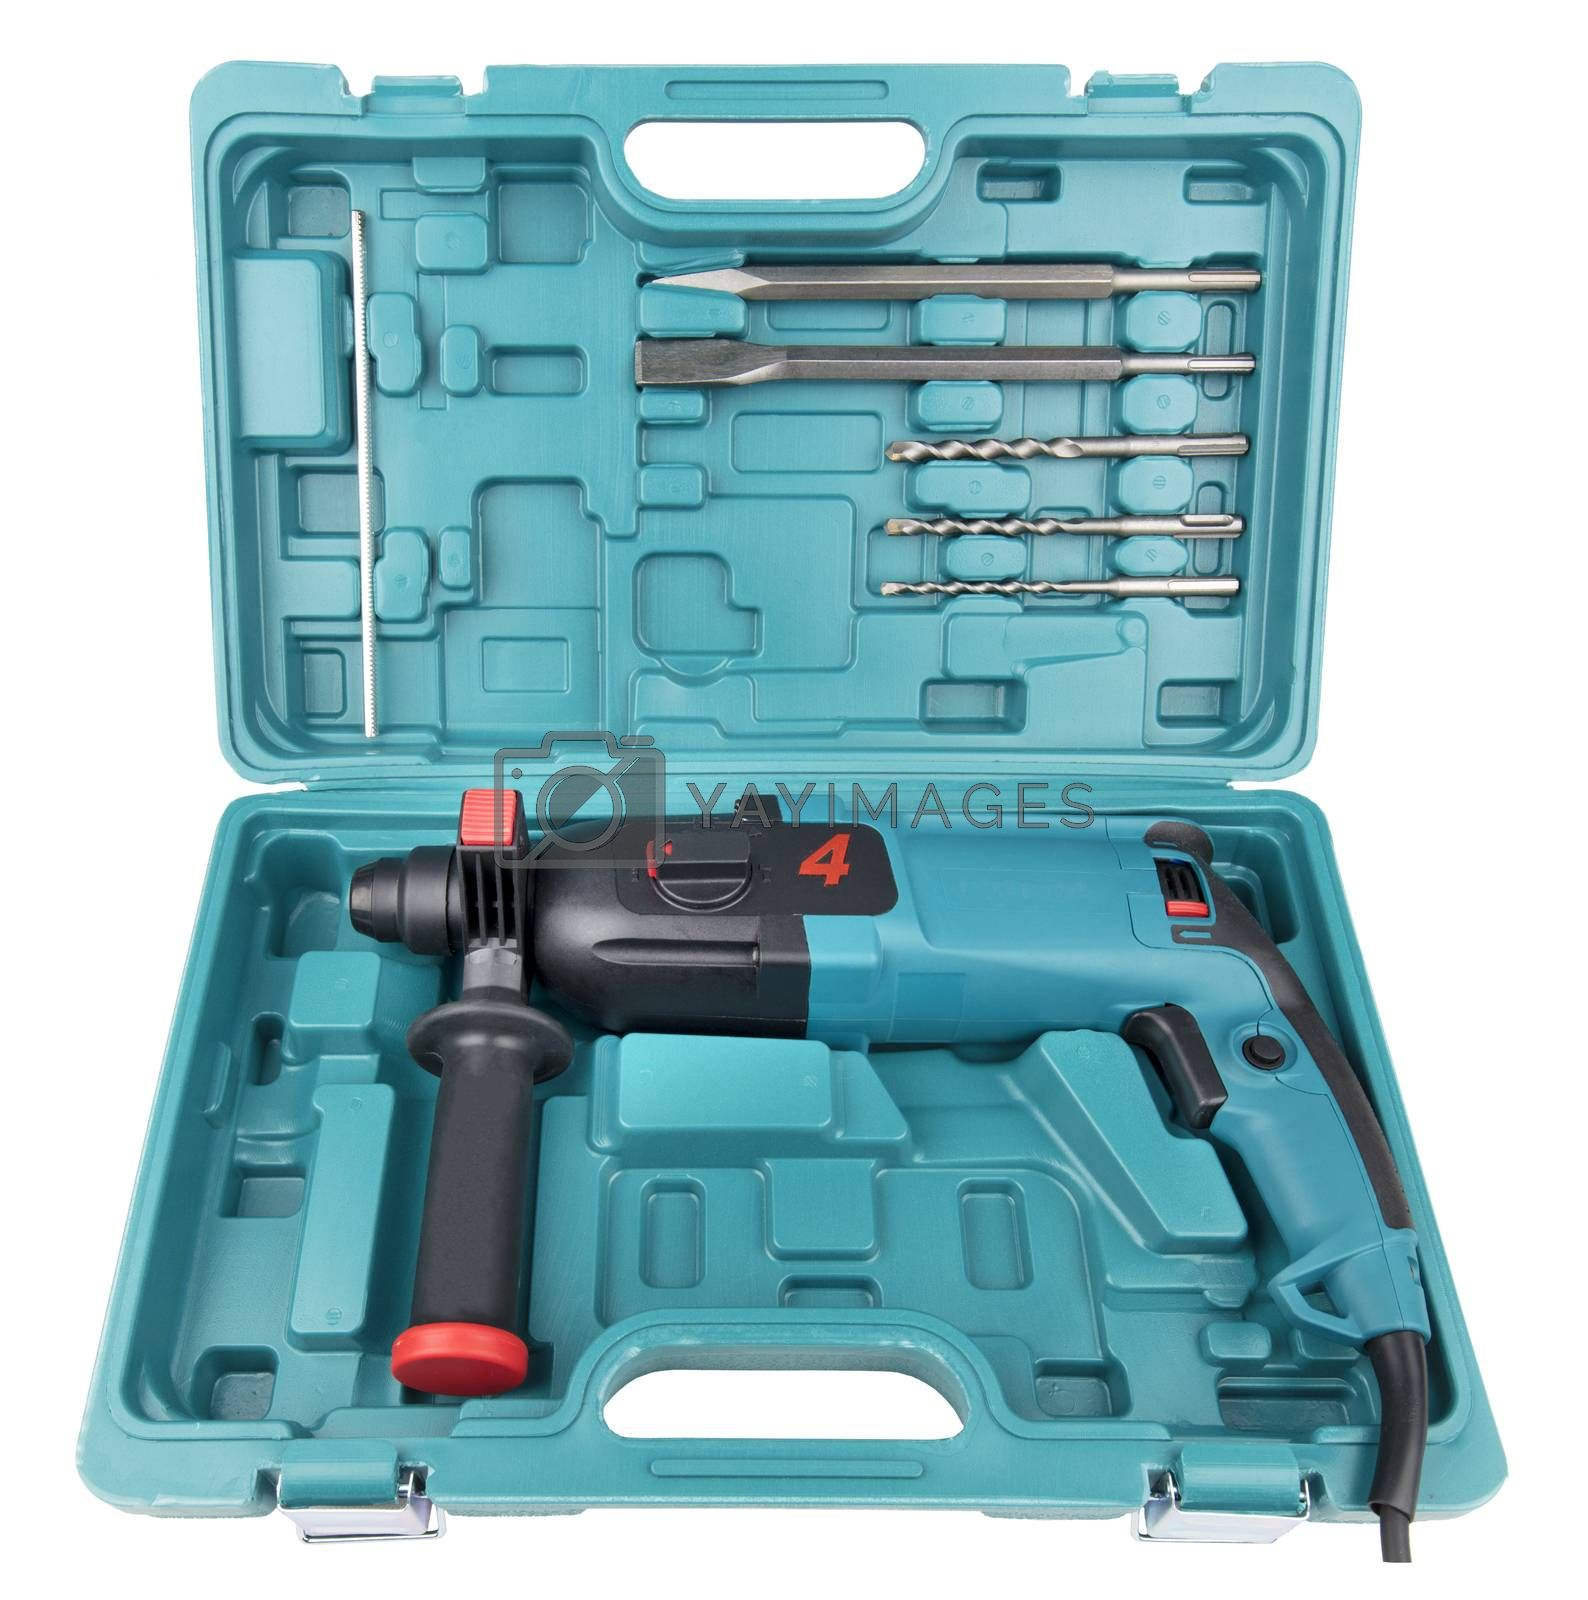 Manual electric drill-puncher of black and turquoise color for professional work in construction c with a set of additional borer attachments, chisel and peak in a convenient portable case isolated on a white background